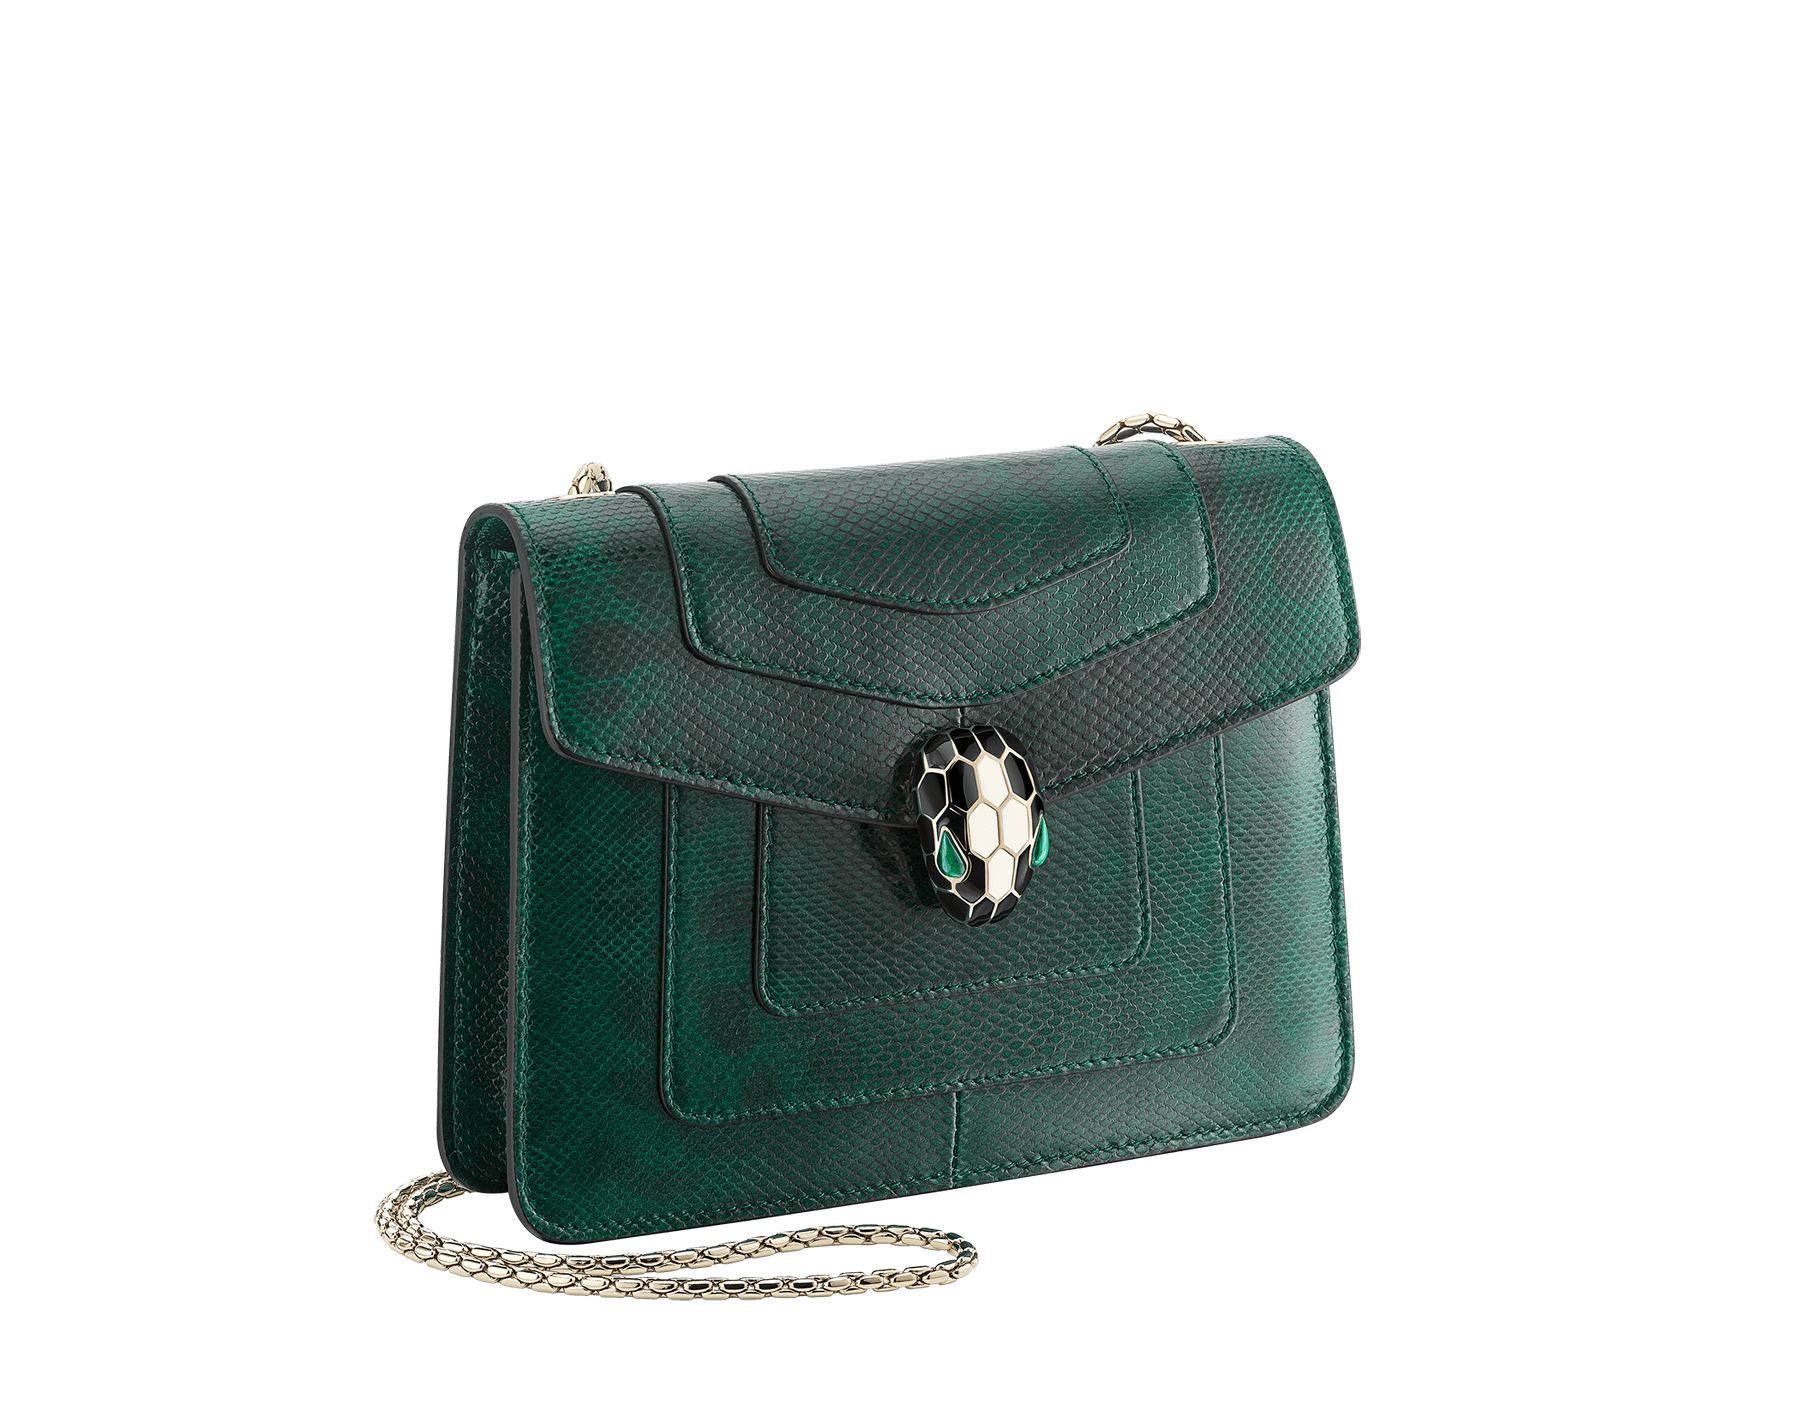 """""""Serpenti Forever"""" crossbody bag in shiny forest emerald karung skin. Iconic snakehead closure in light gold plated brass enriched with black and white enamel and green malachite eyes. 287357 image 2"""